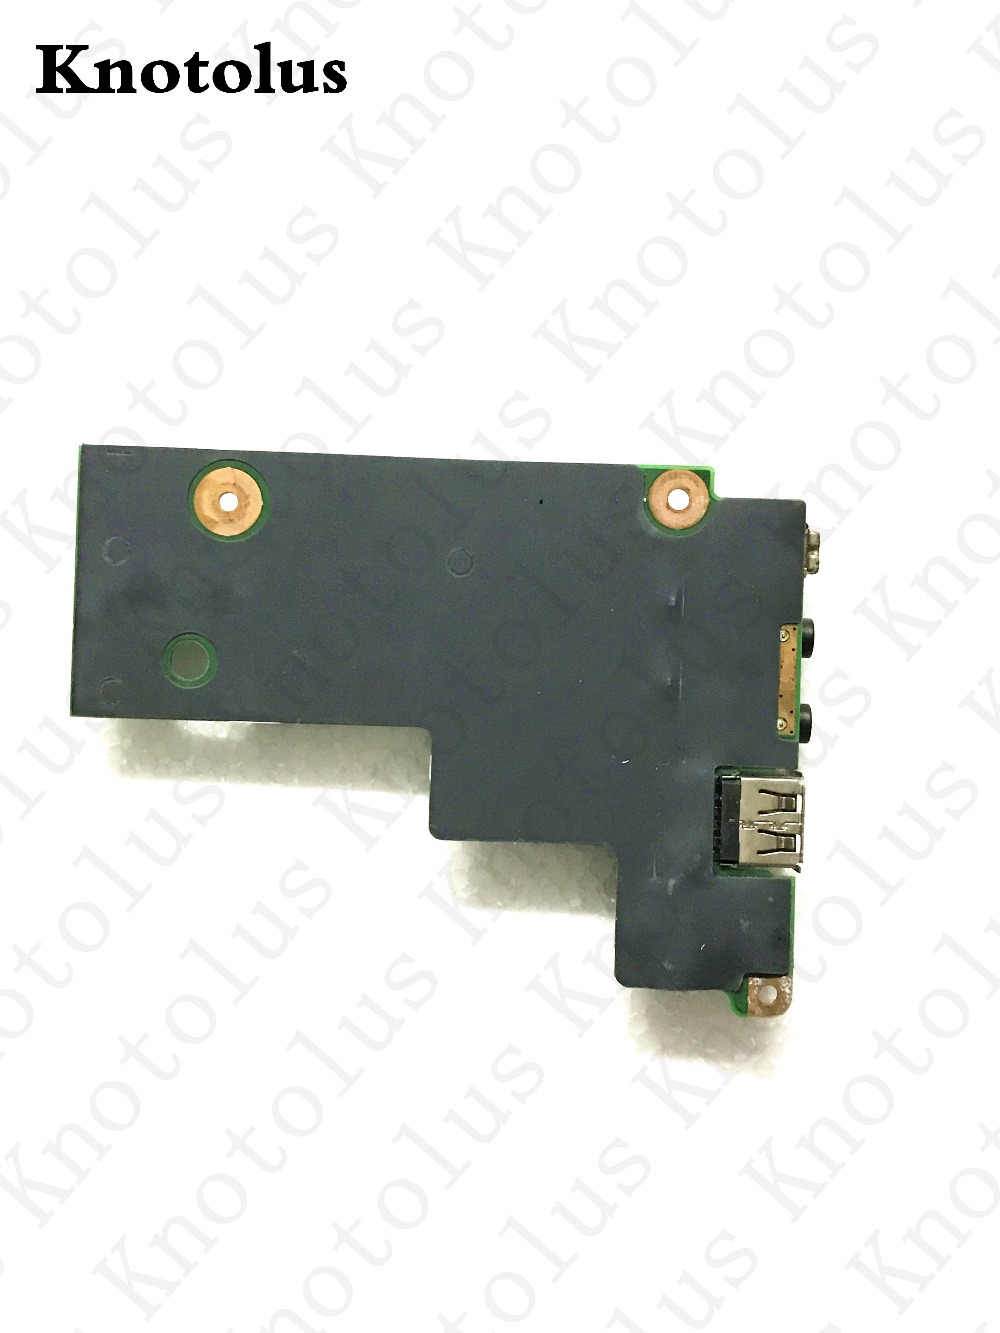 cn-0f171c switch usb audio board for dell e5500 usb audio switch power board 07608-1 48.4×809.011 Free Shipping 100% test ok